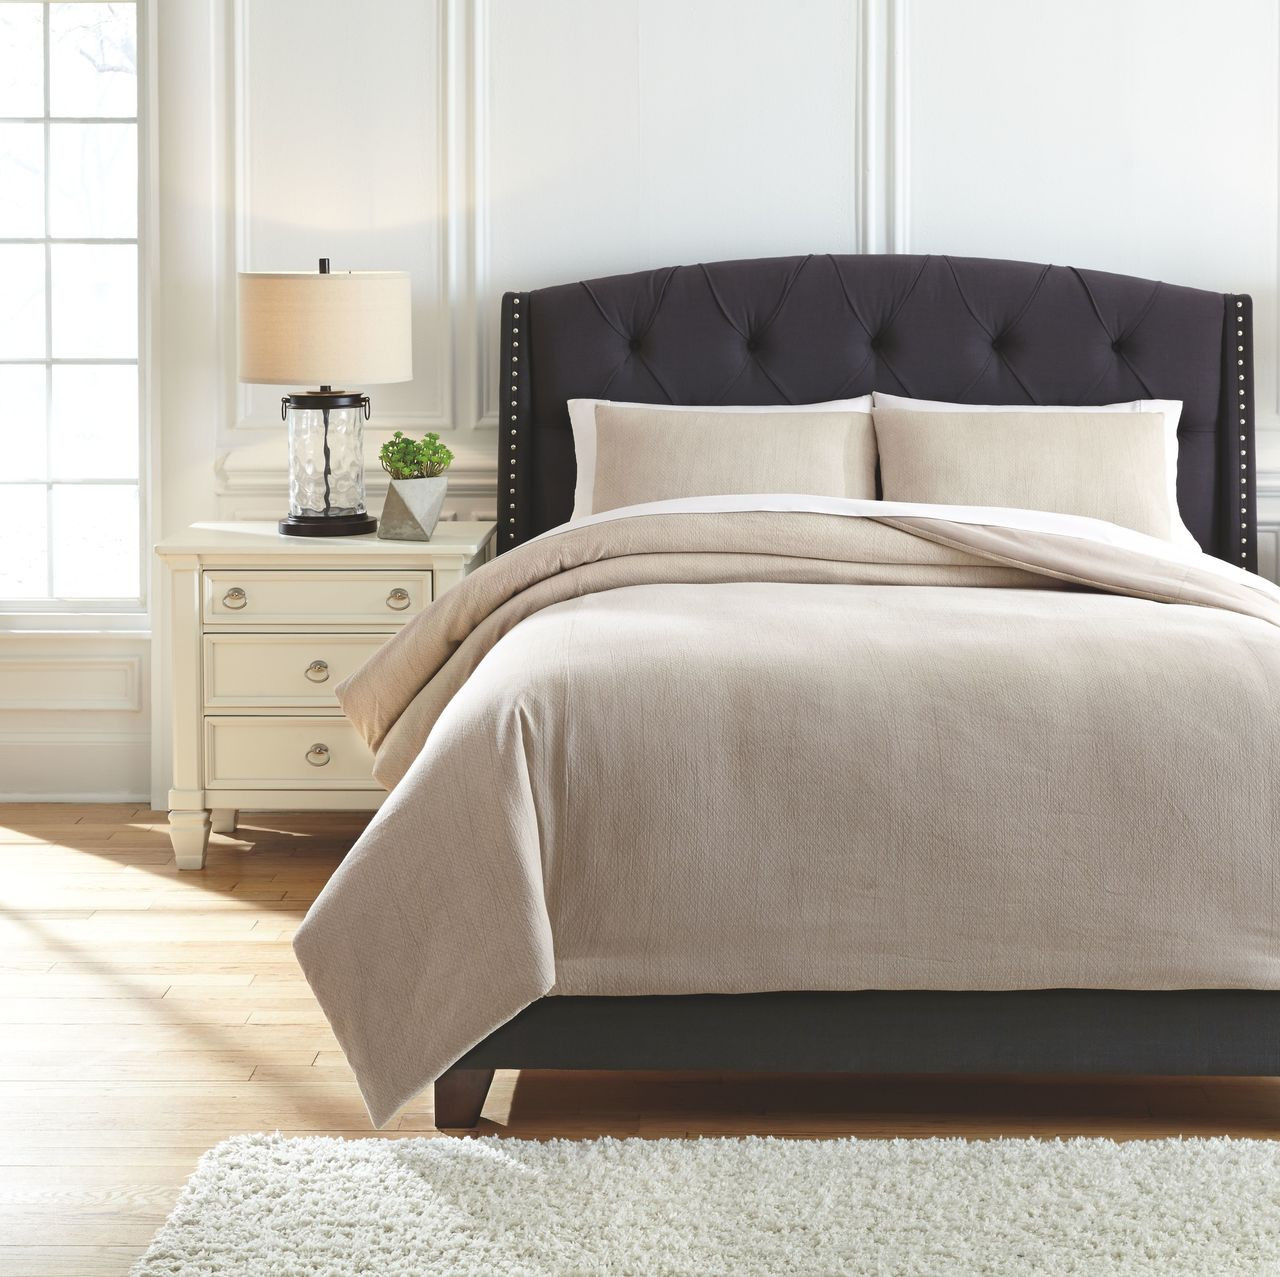 The Mayda Beige King Comforter Set Available At Furniture